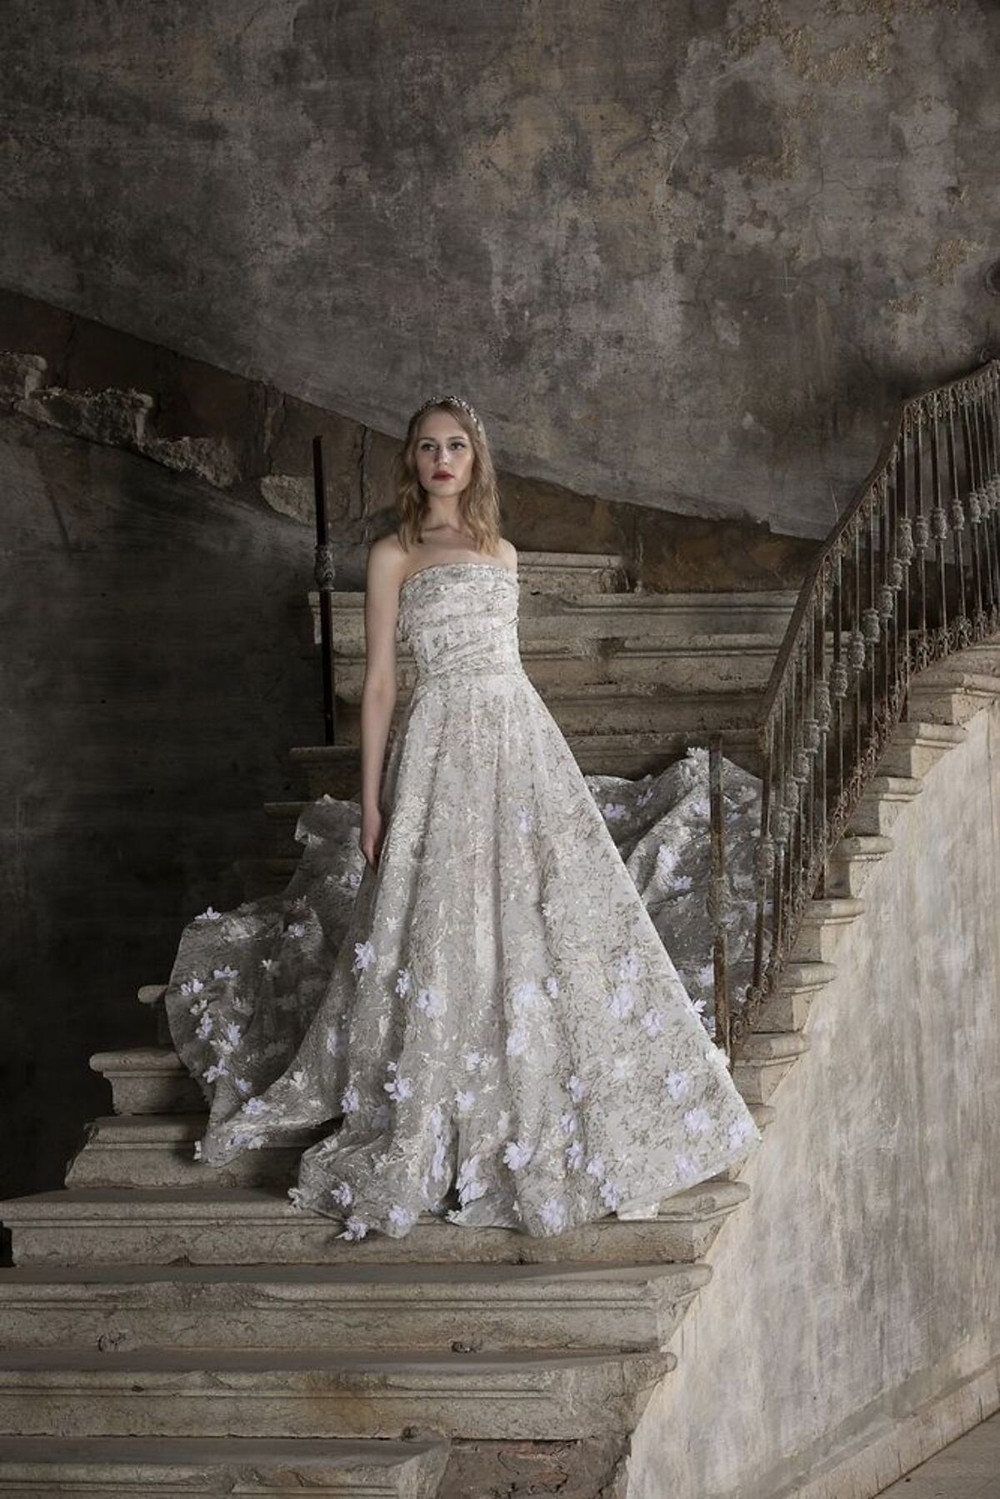 A strapless A-line wedding dress enriched with gold detailing and three-dimensional flower embellishments